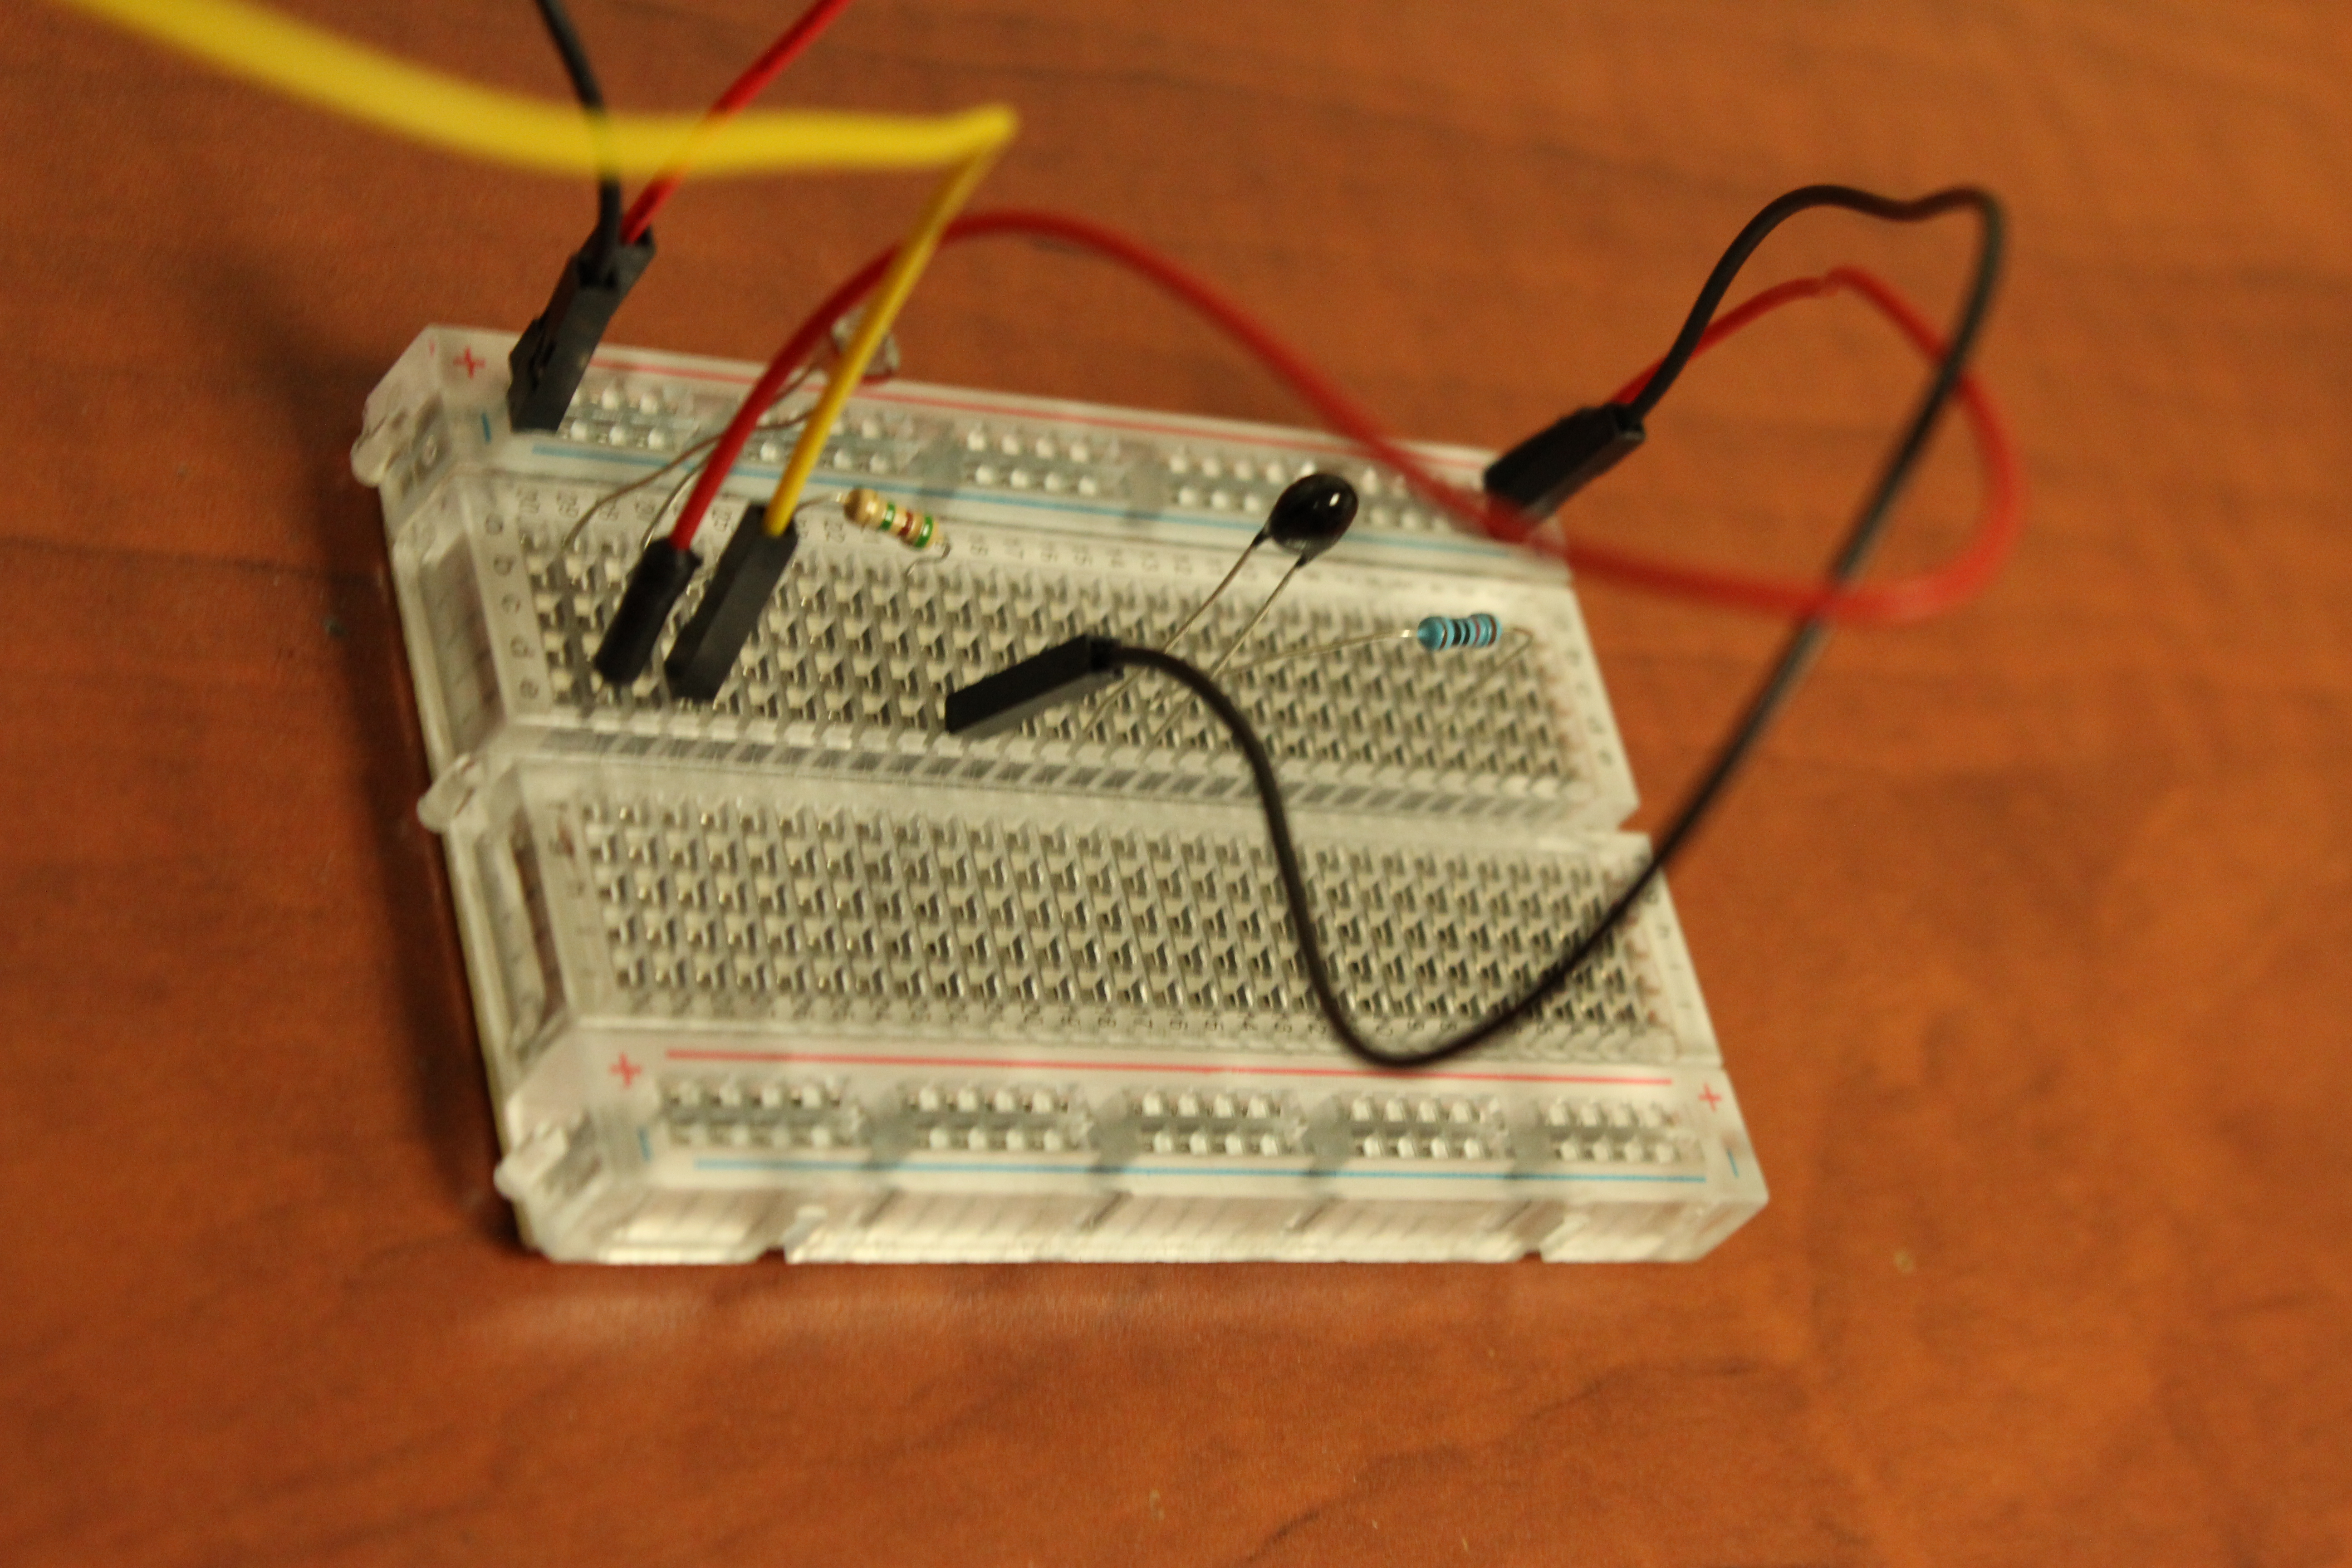 Picture of Connecting the Thermistor Sensor to the Breadboard